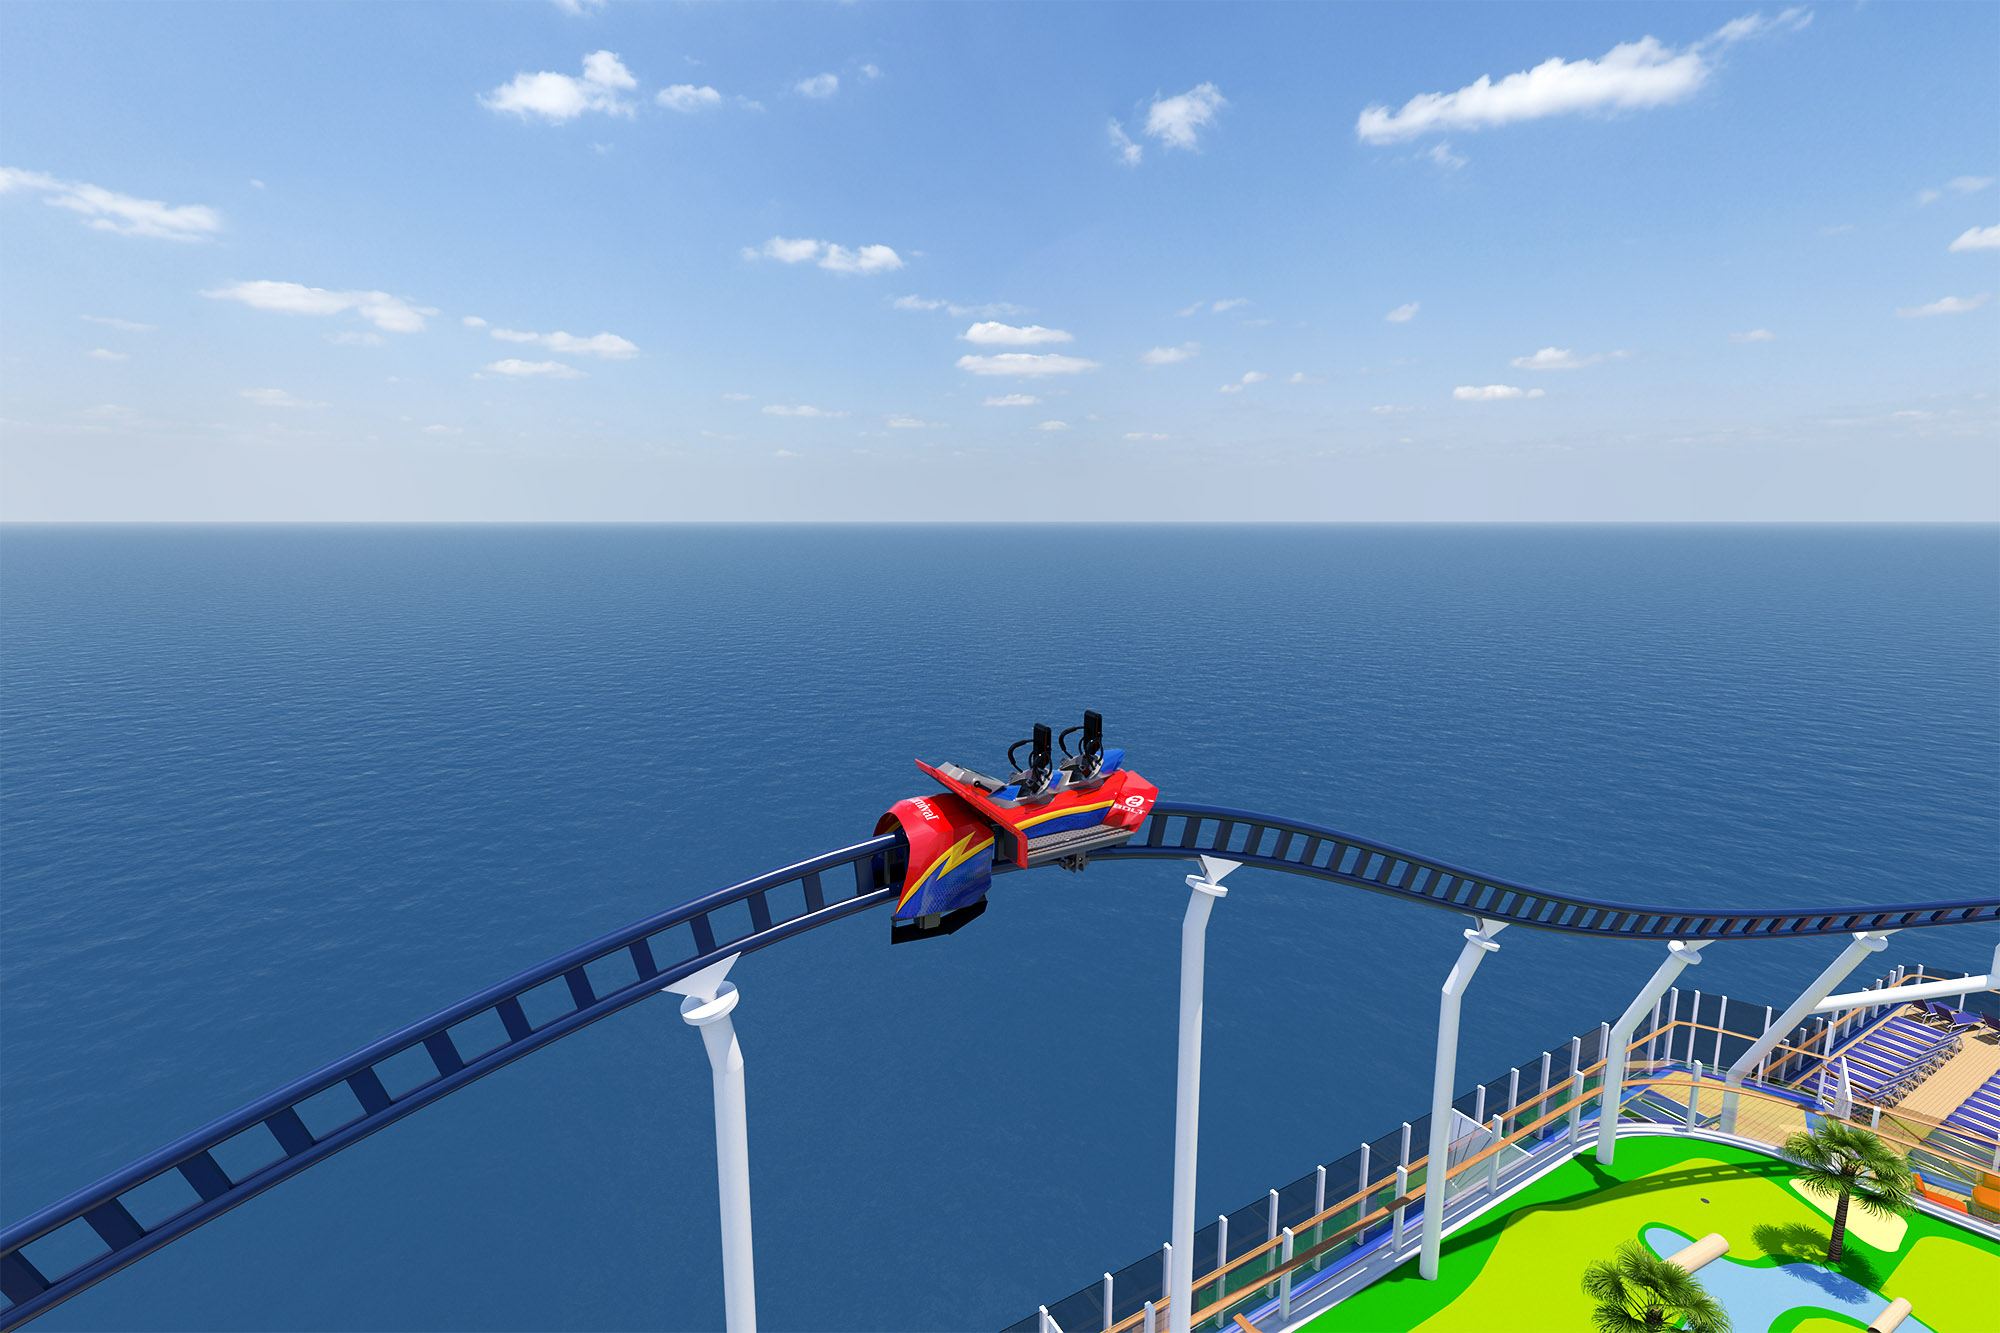 Carnival Cruise Line Unveils Additional Details on Roller Coaster at Sea and Expansive Outdoor Recreation Area on Mardi Gras